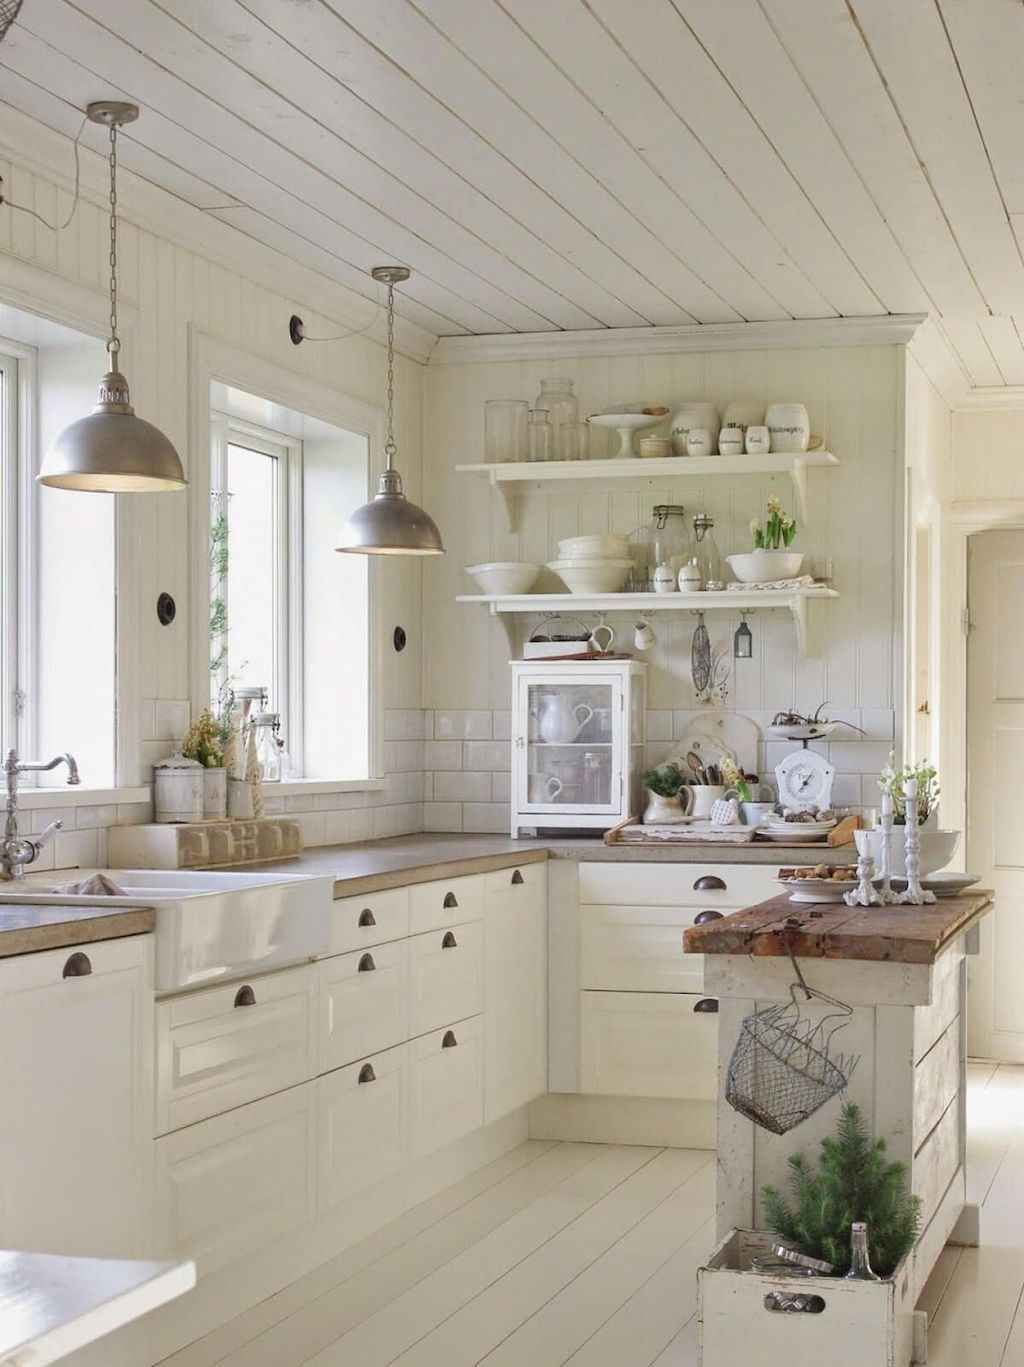 01 Beautiful French Country Kitchen Decor Ideas - homixover.com